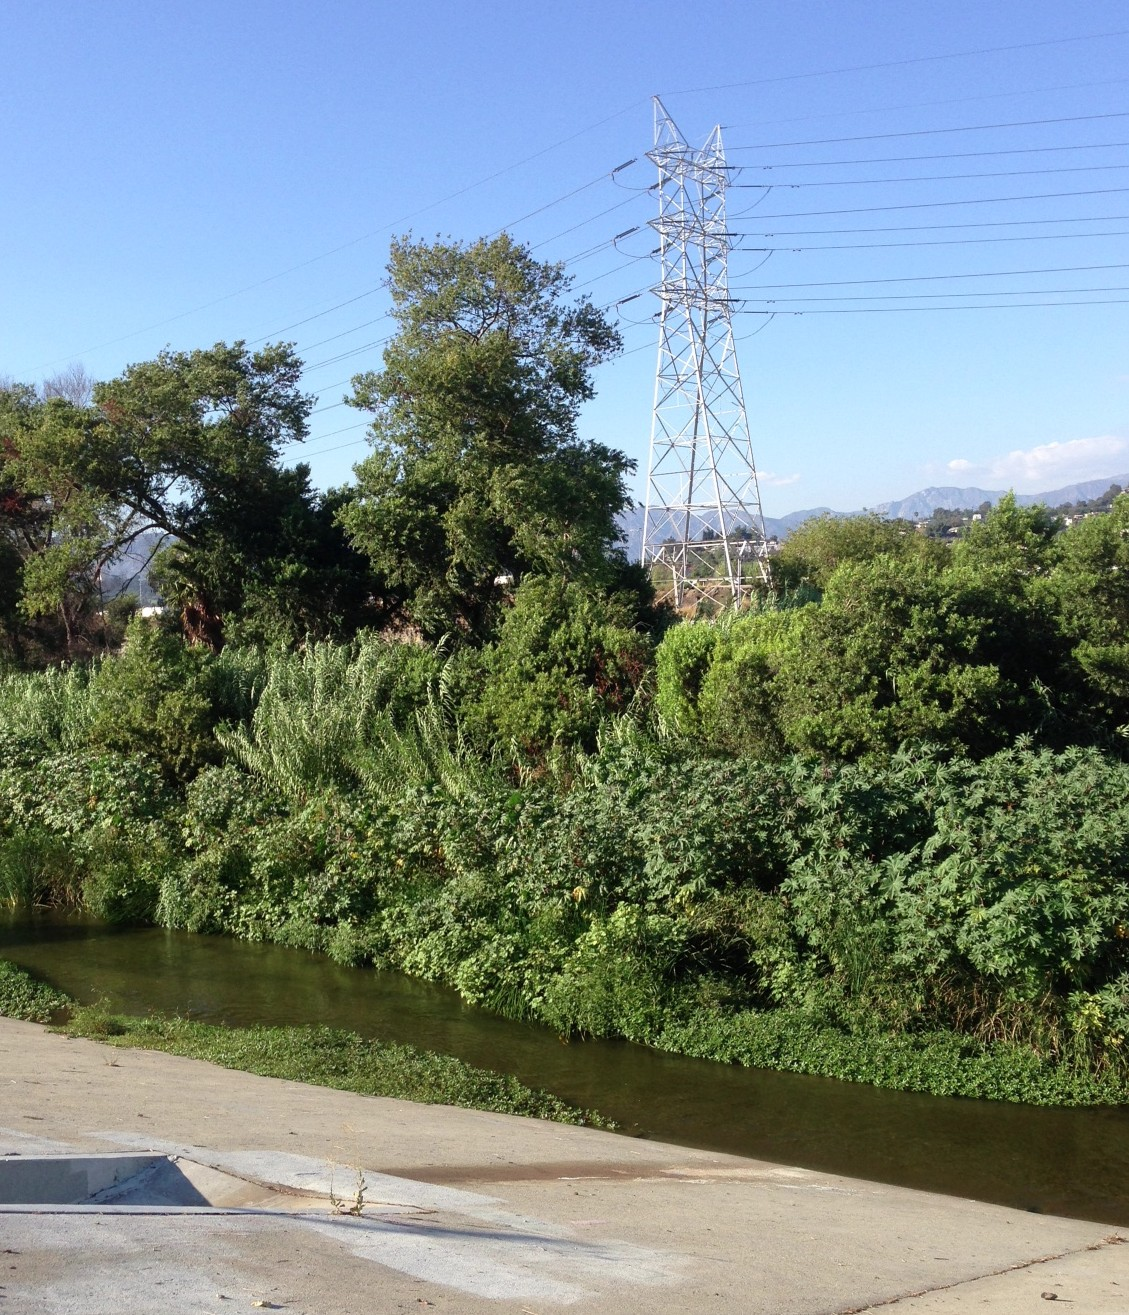 The Glendale Narrows stretch of the Los Angeles River. Though the sides are concrete, the earth bottom supports tall trees growing in a largely natural river. Photo by Joe Linton/Streetsblog L.A.